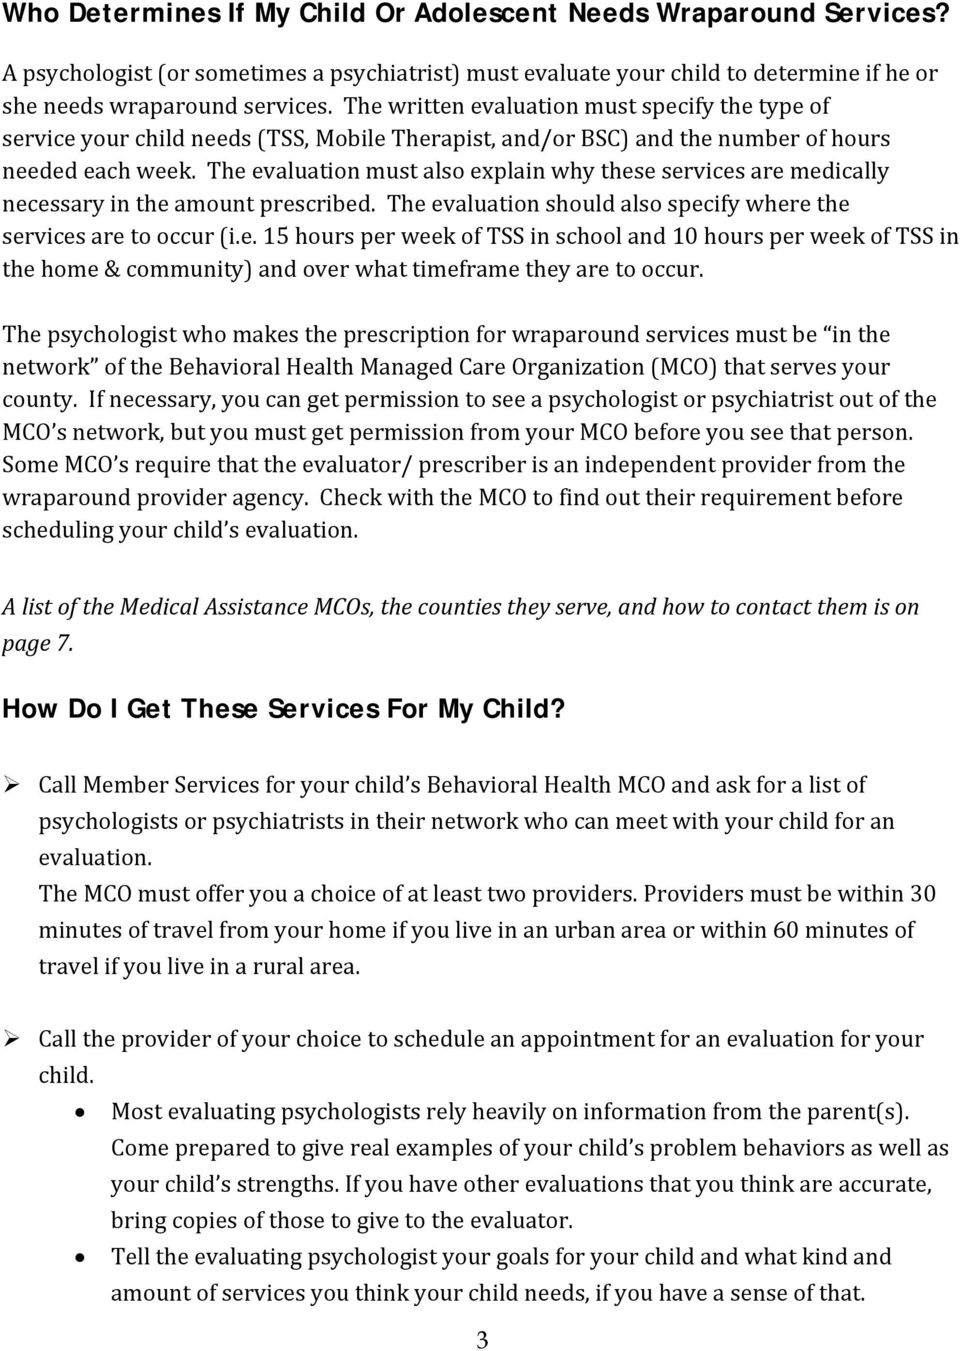 The evaluation must also explain why these services are medically necessary in the amount prescribed. The evaluation should also specify where the services are to occur (i.e. 15 hours per week of TSS in school and 10 hours per week of TSS in the home & community) and over what timeframe they are to occur.